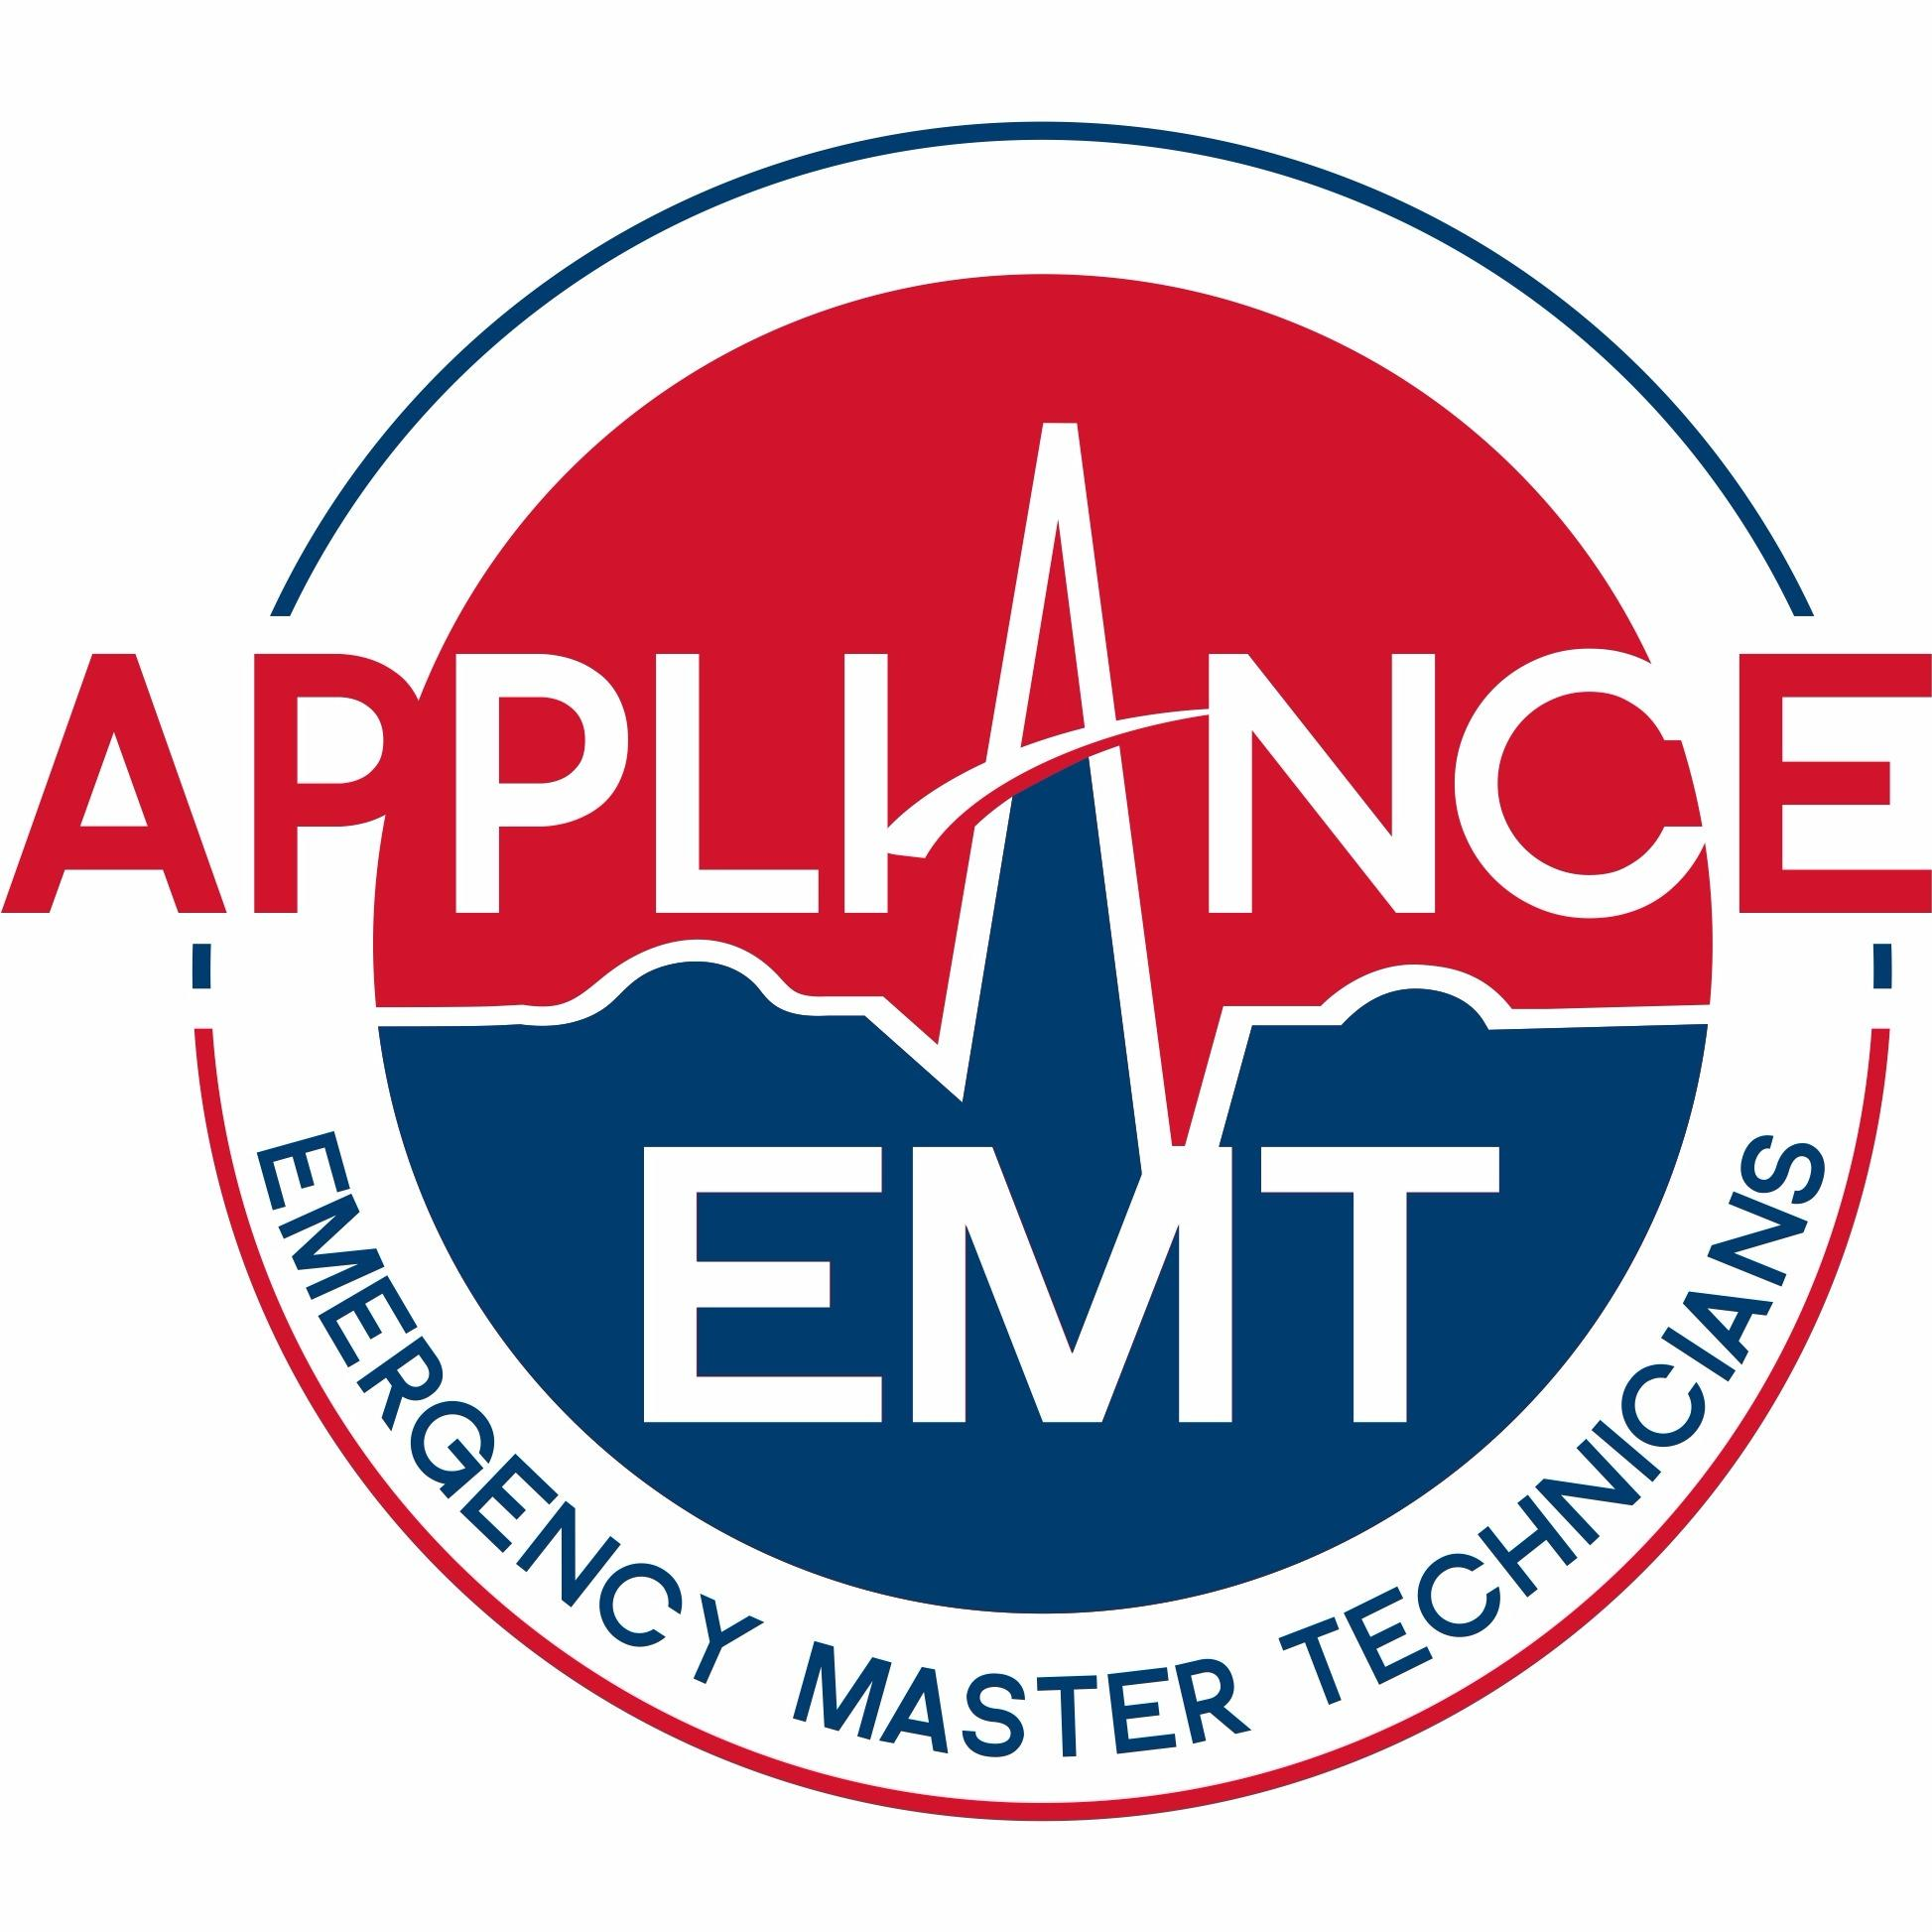 Appliance EMT